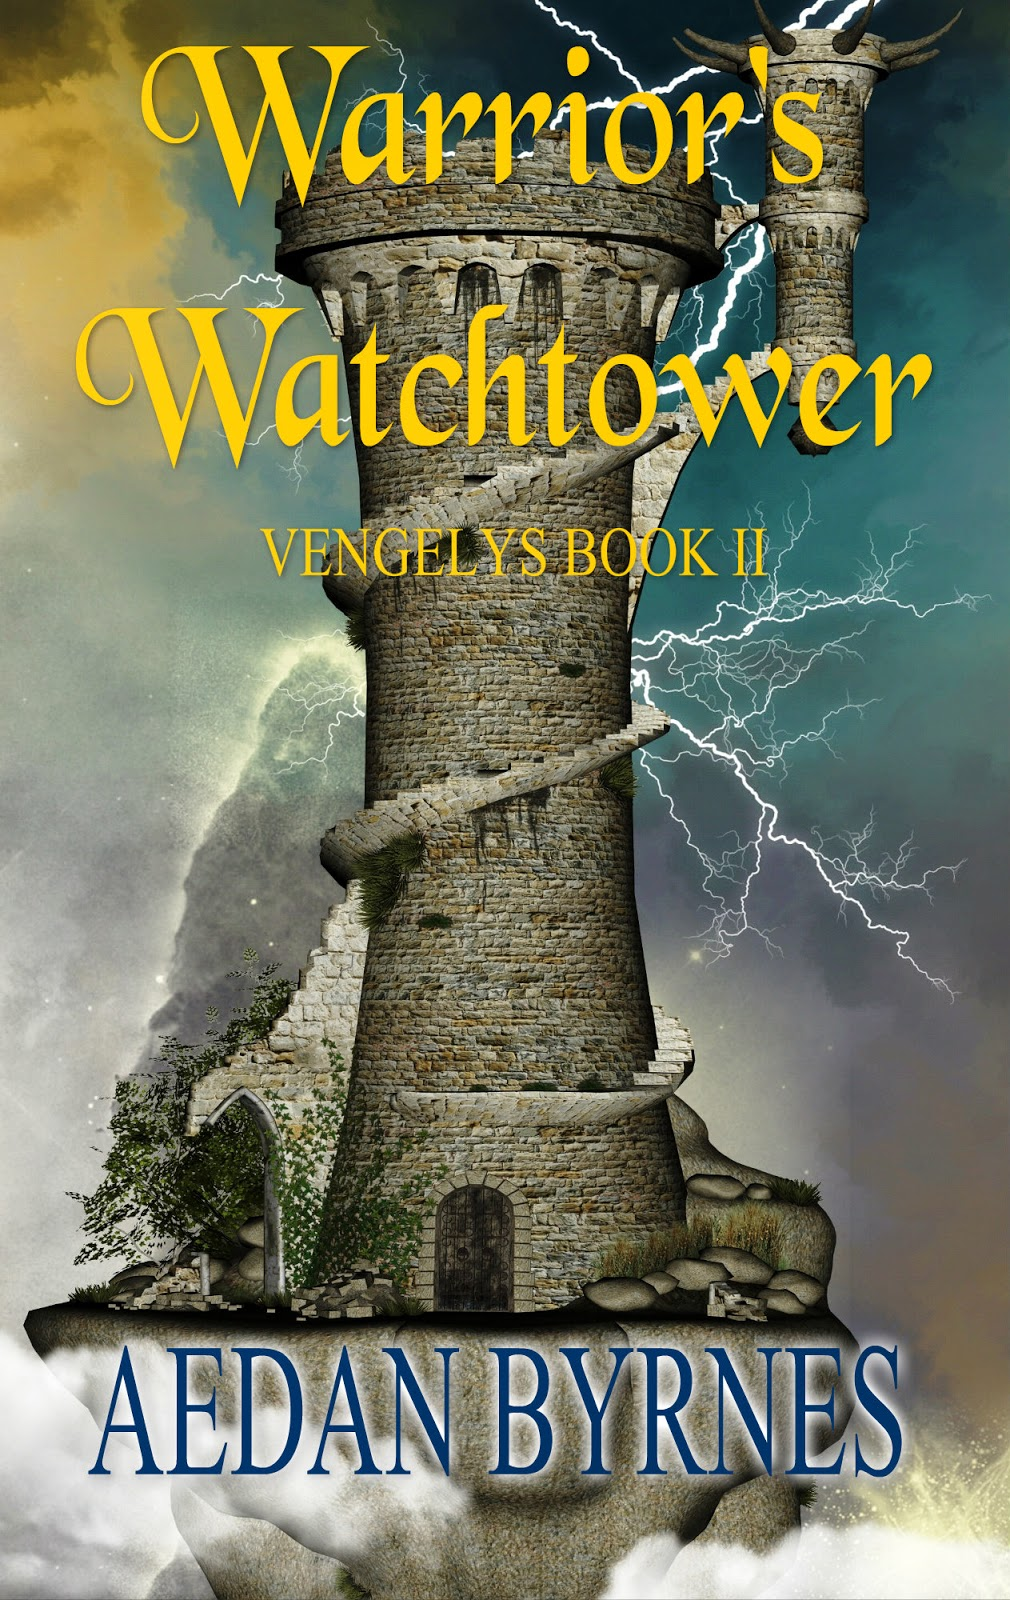 http://readsallthebooks.blogspot.com/2014/11/warriors-watchtower-review.html